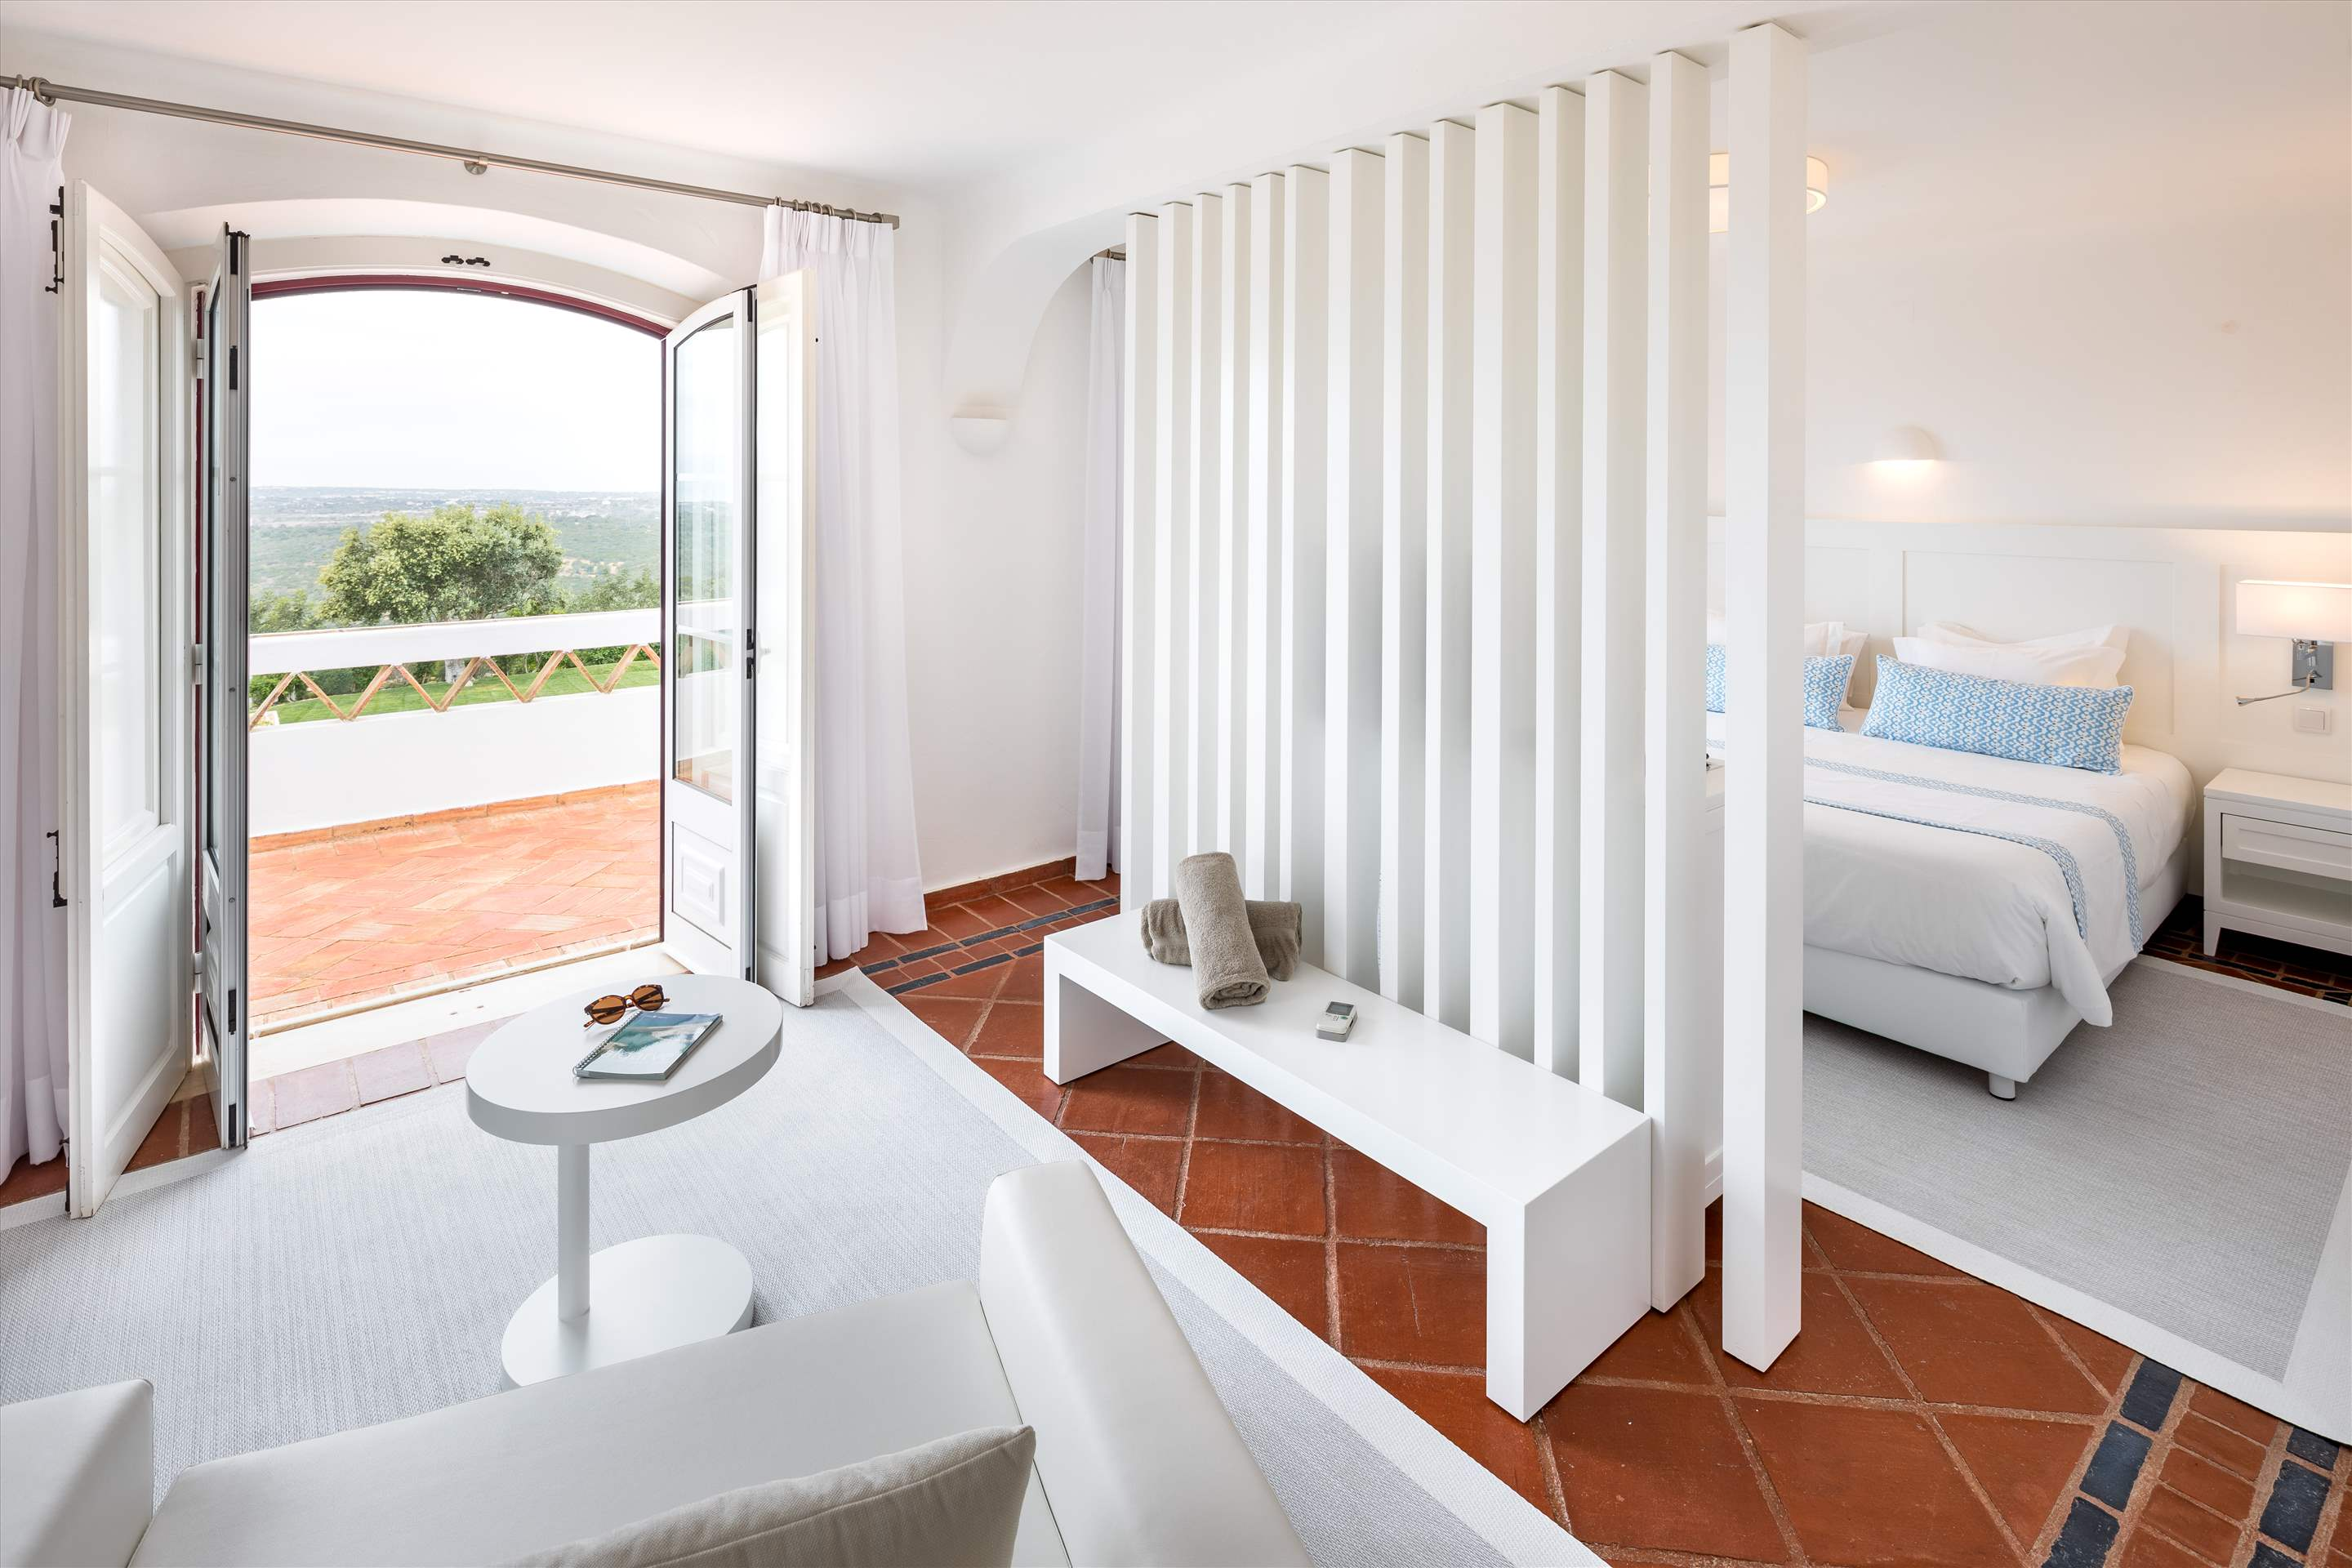 Casa Cahombo, 5 bedroom rate for 7-10 persons, 5 bedroom villa in Vilamoura Area, Algarve Photo #21